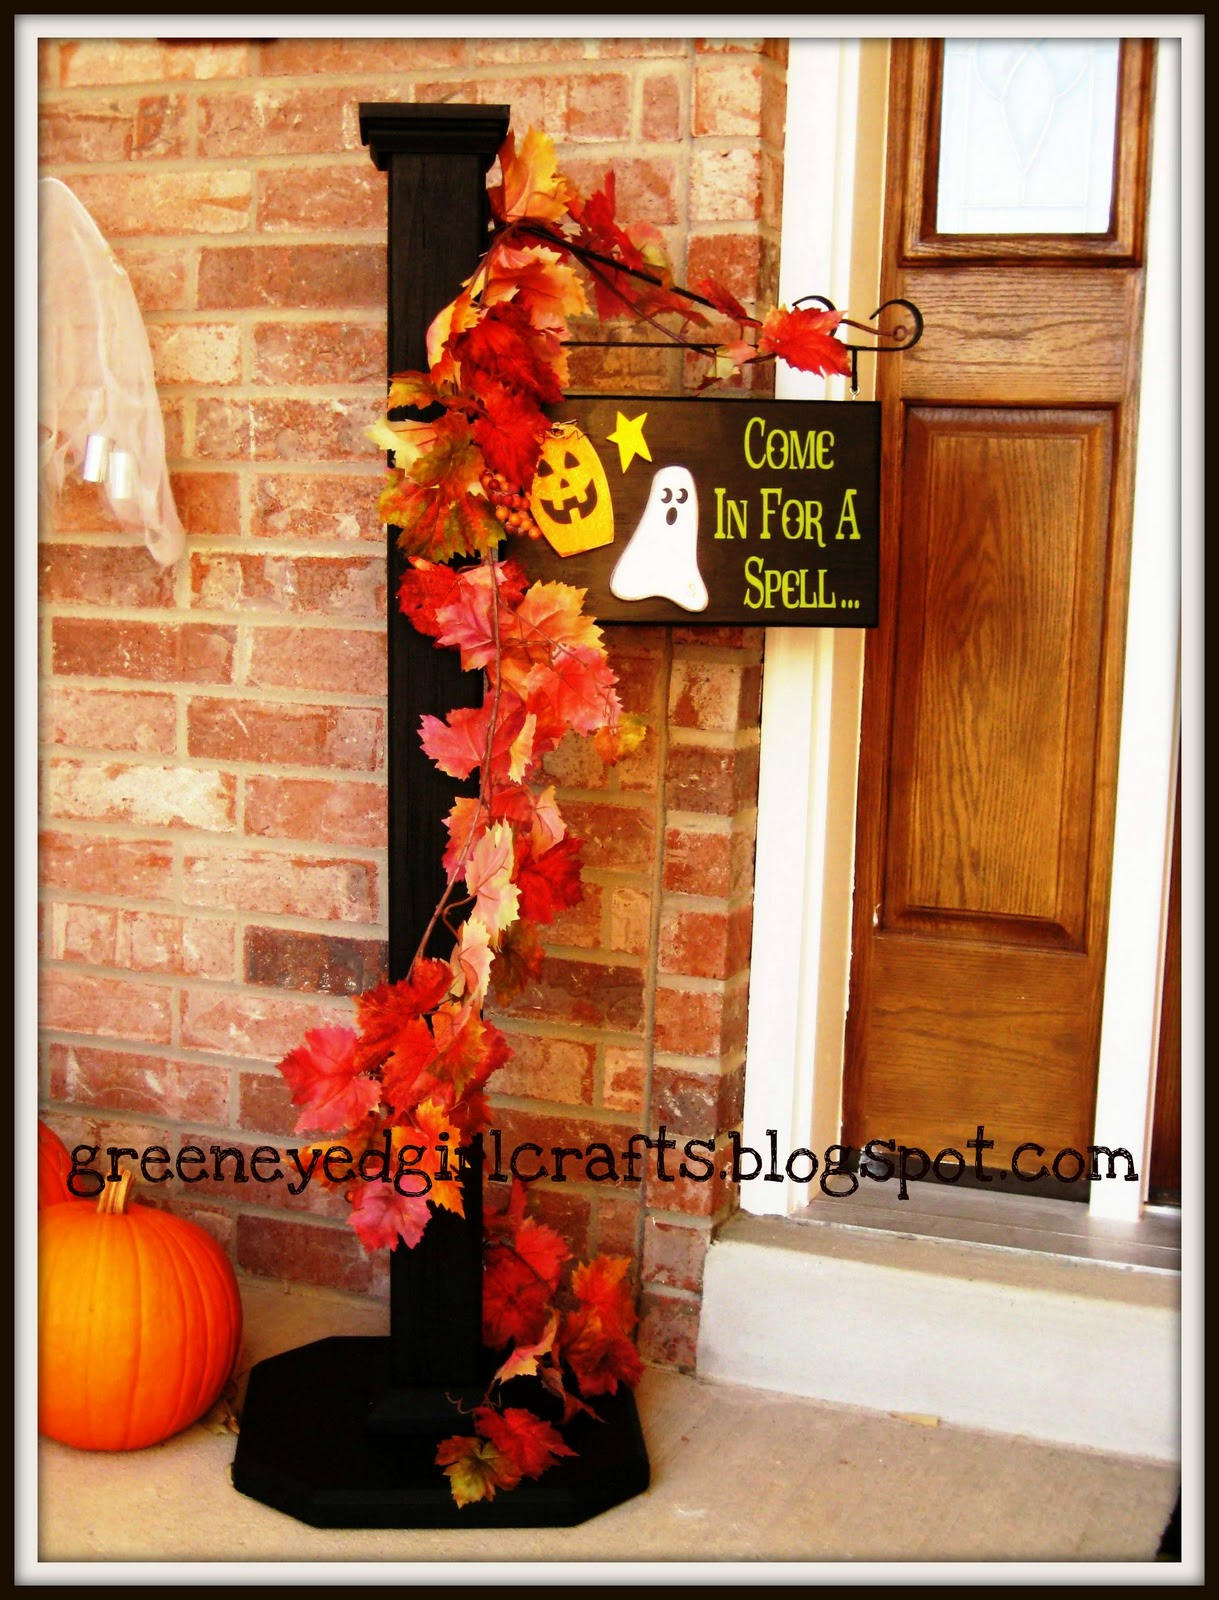 Green Eyed Girl Crafts Welcome Post